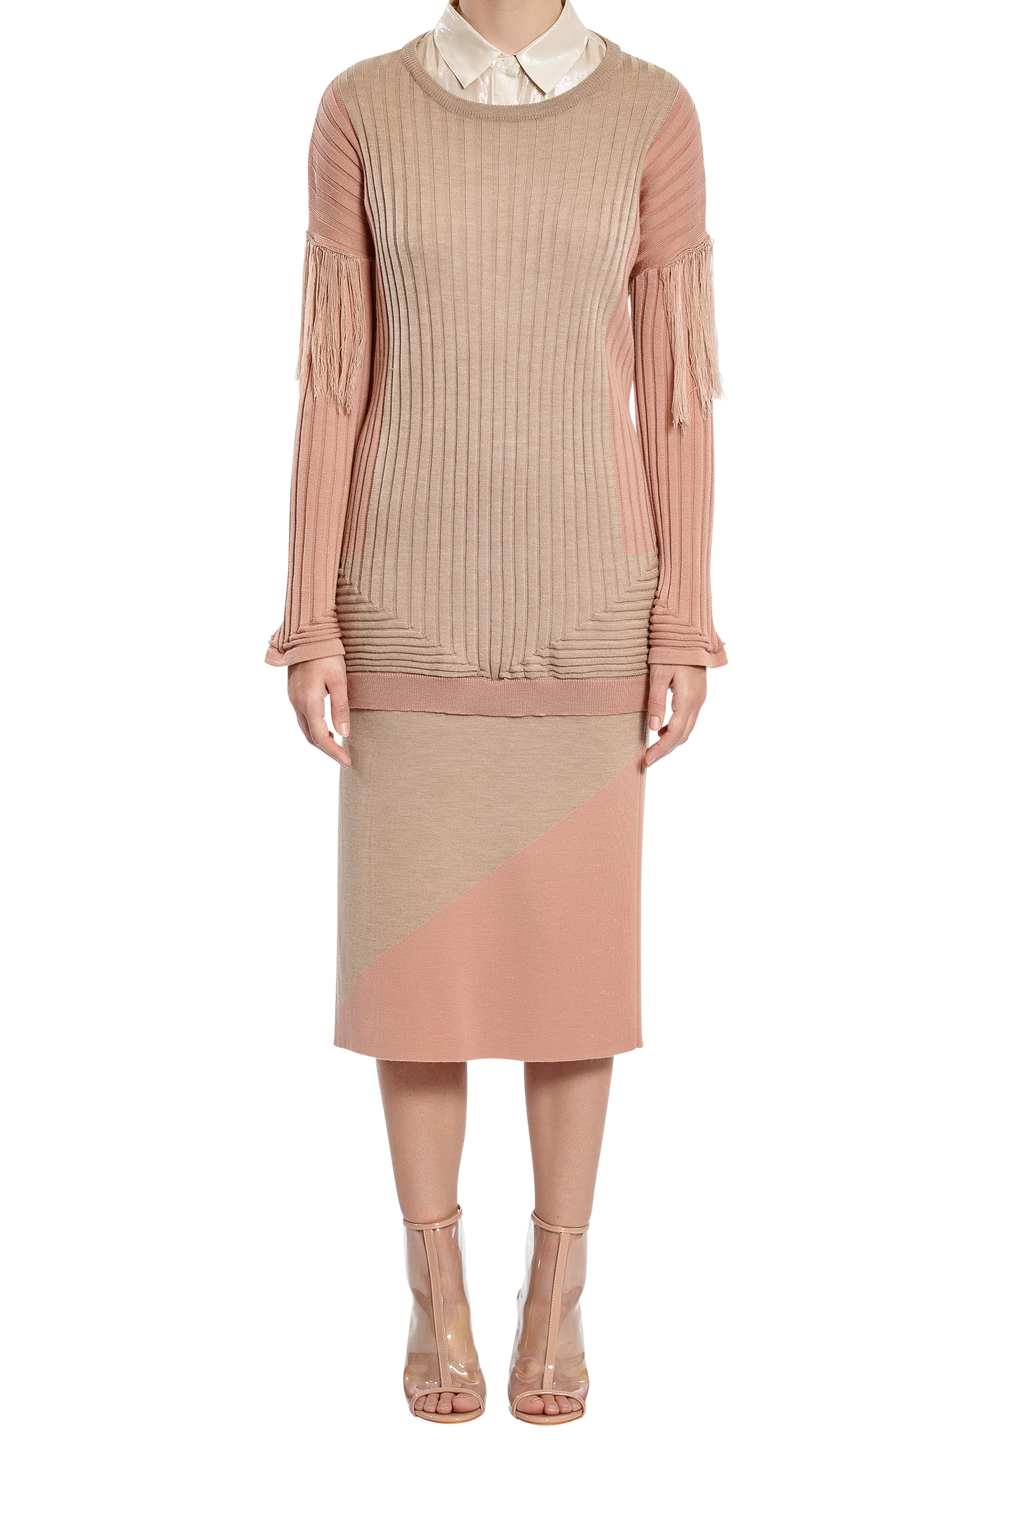 Shadows Rib Jumper - Taupe/Pink